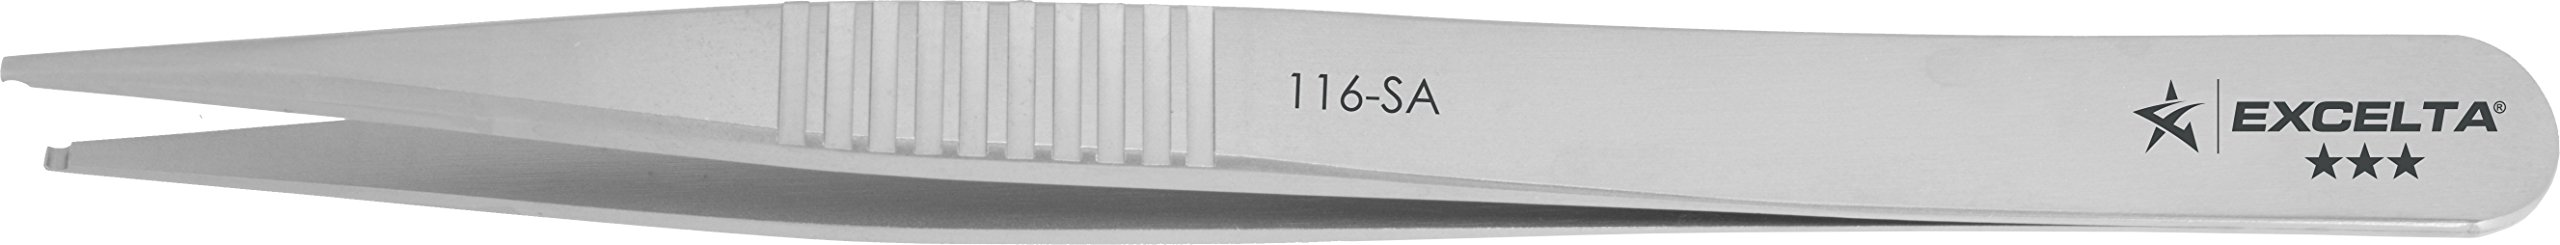 Excelta - 116-SA - Tweezers - SMD - Straight -Three Star - Anti-Mag. SS - with .04'' Groove In Tip, 0.06'' Height, 0.39300000000000002'' Wide, 4.25'' Length